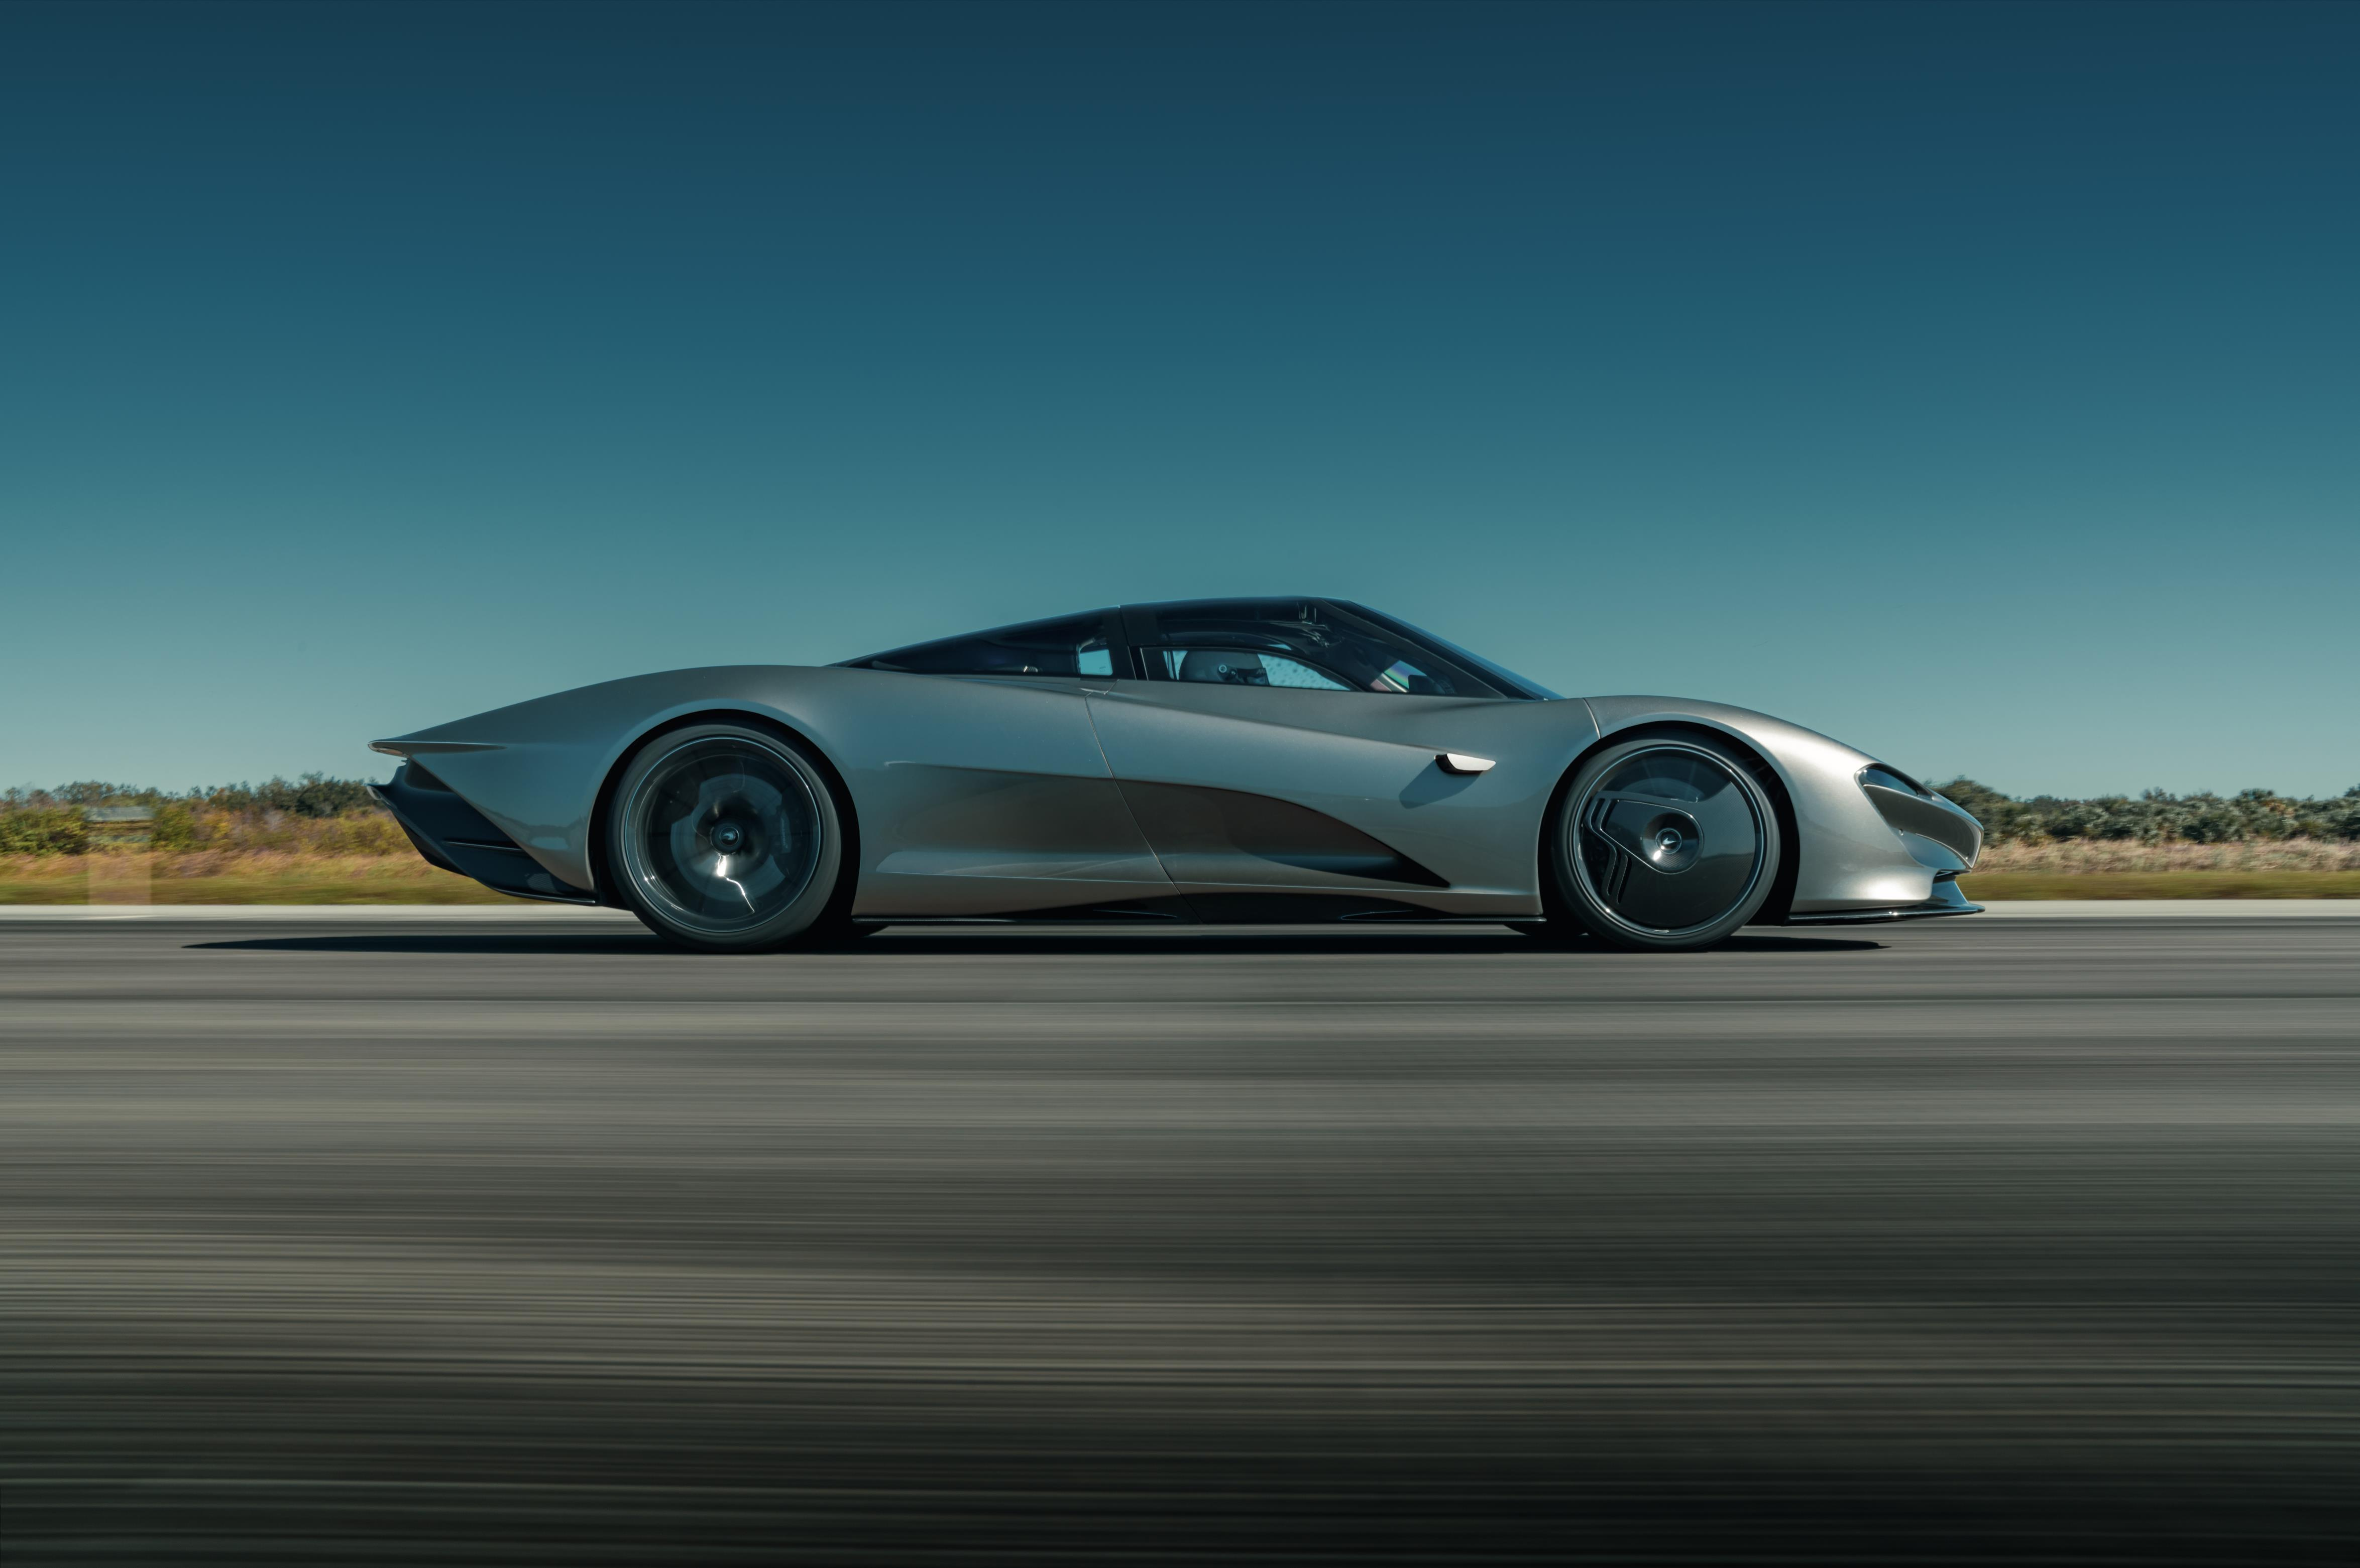 The Speedtail has hit a top speed of 250mph